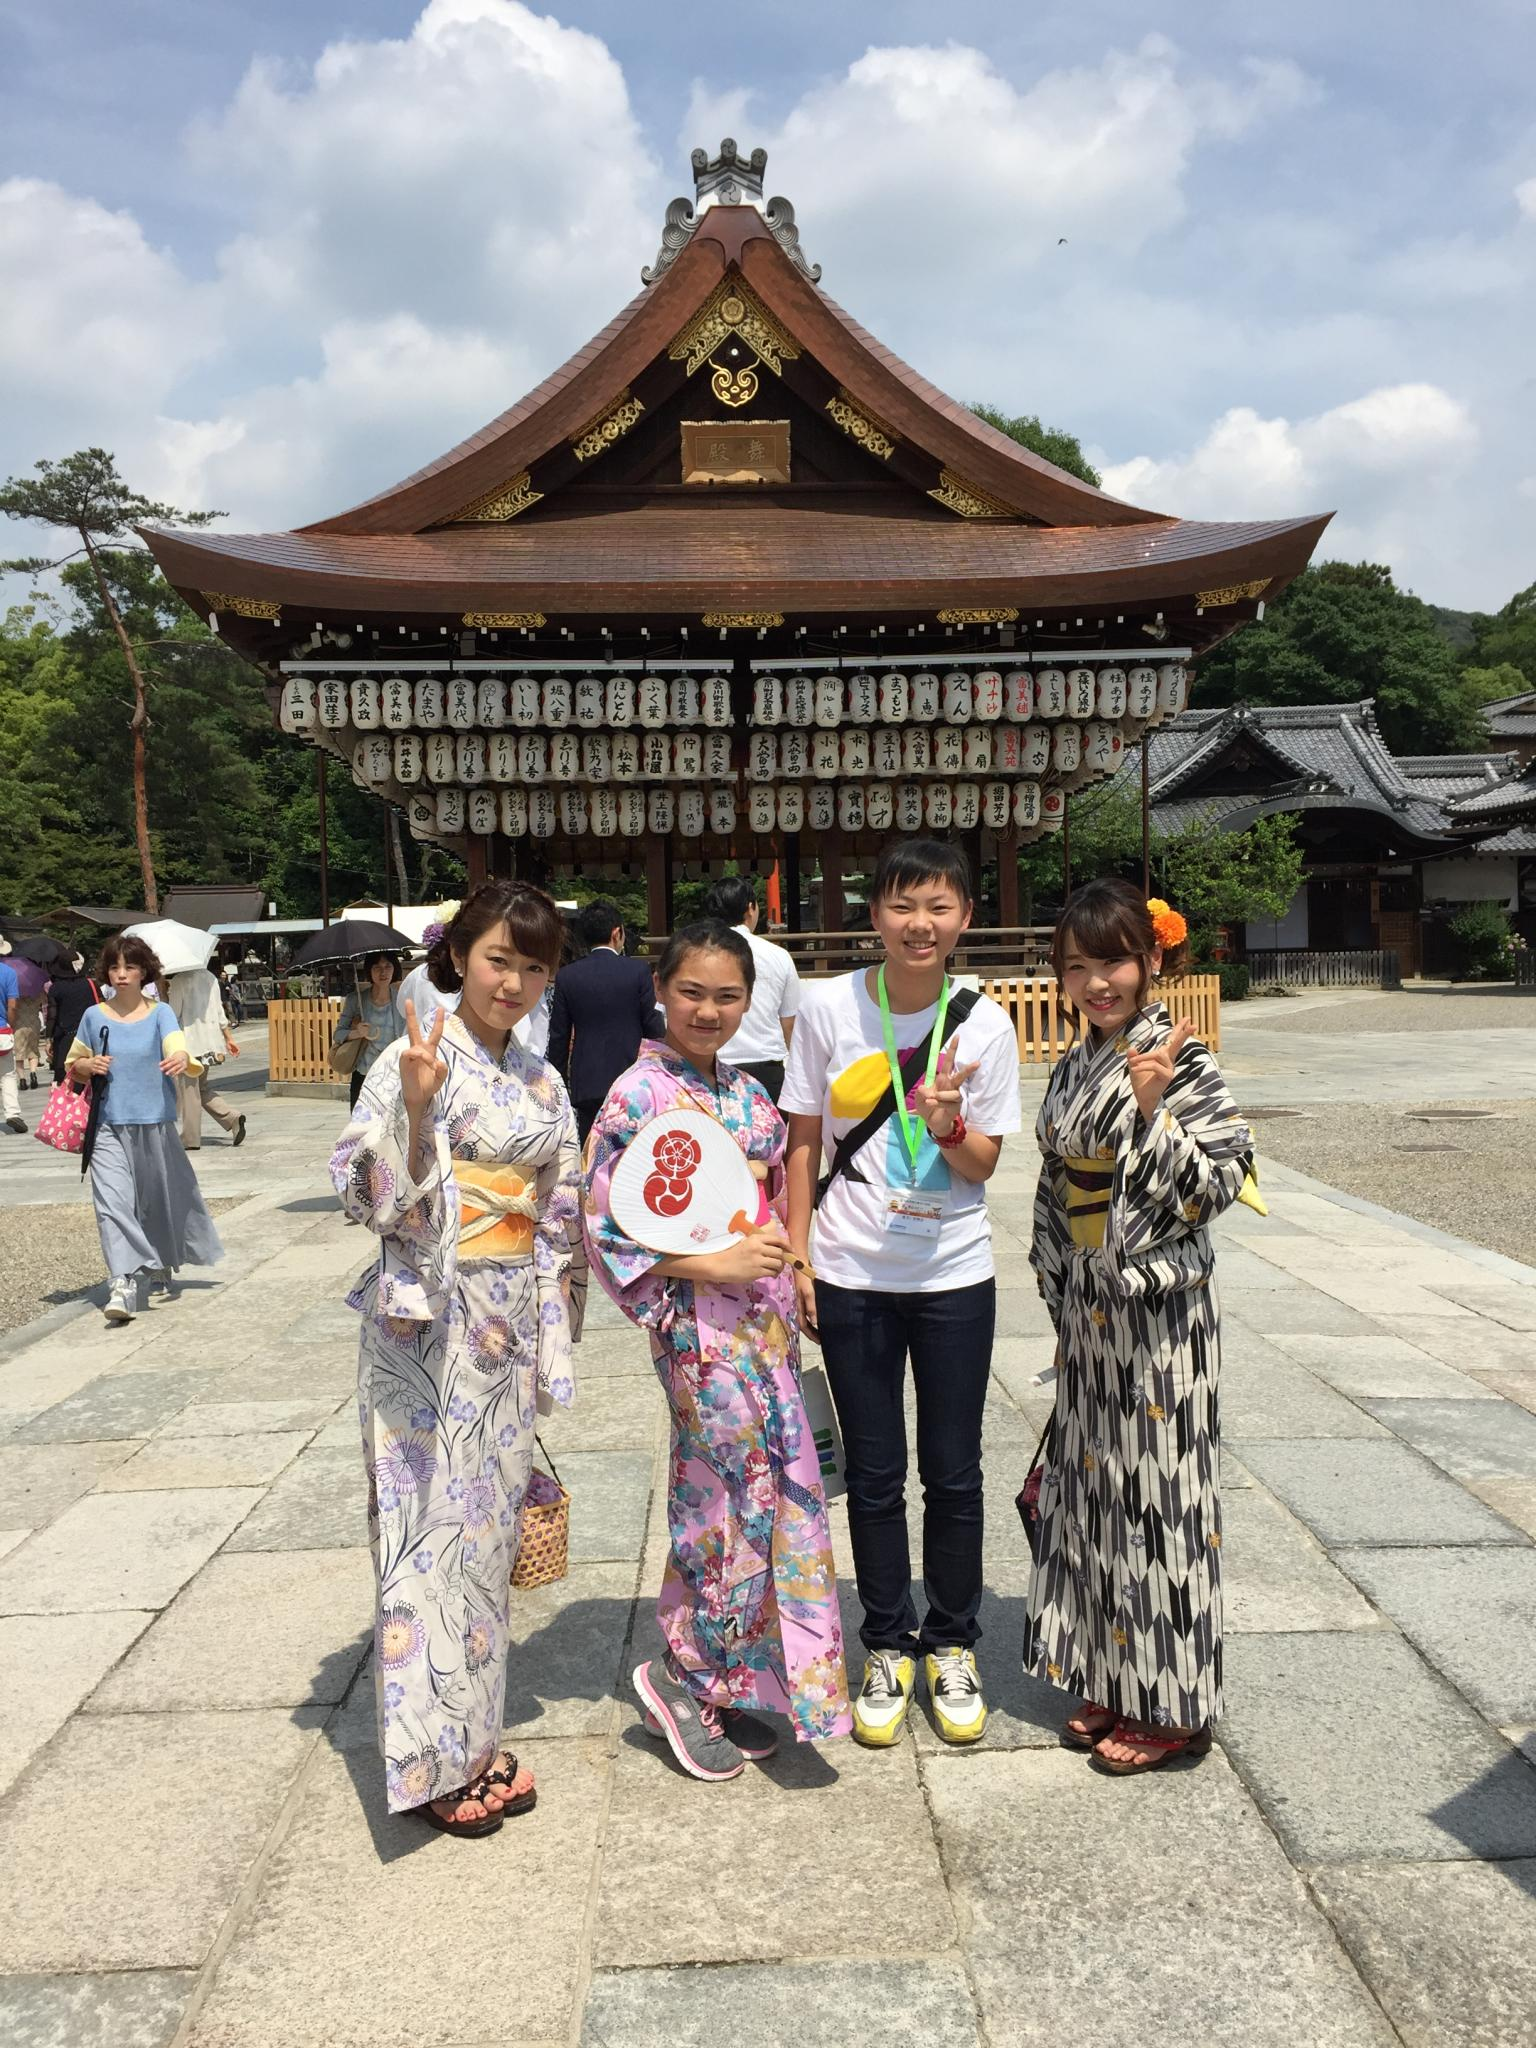 Can you identify our students and the Japanese ladies?